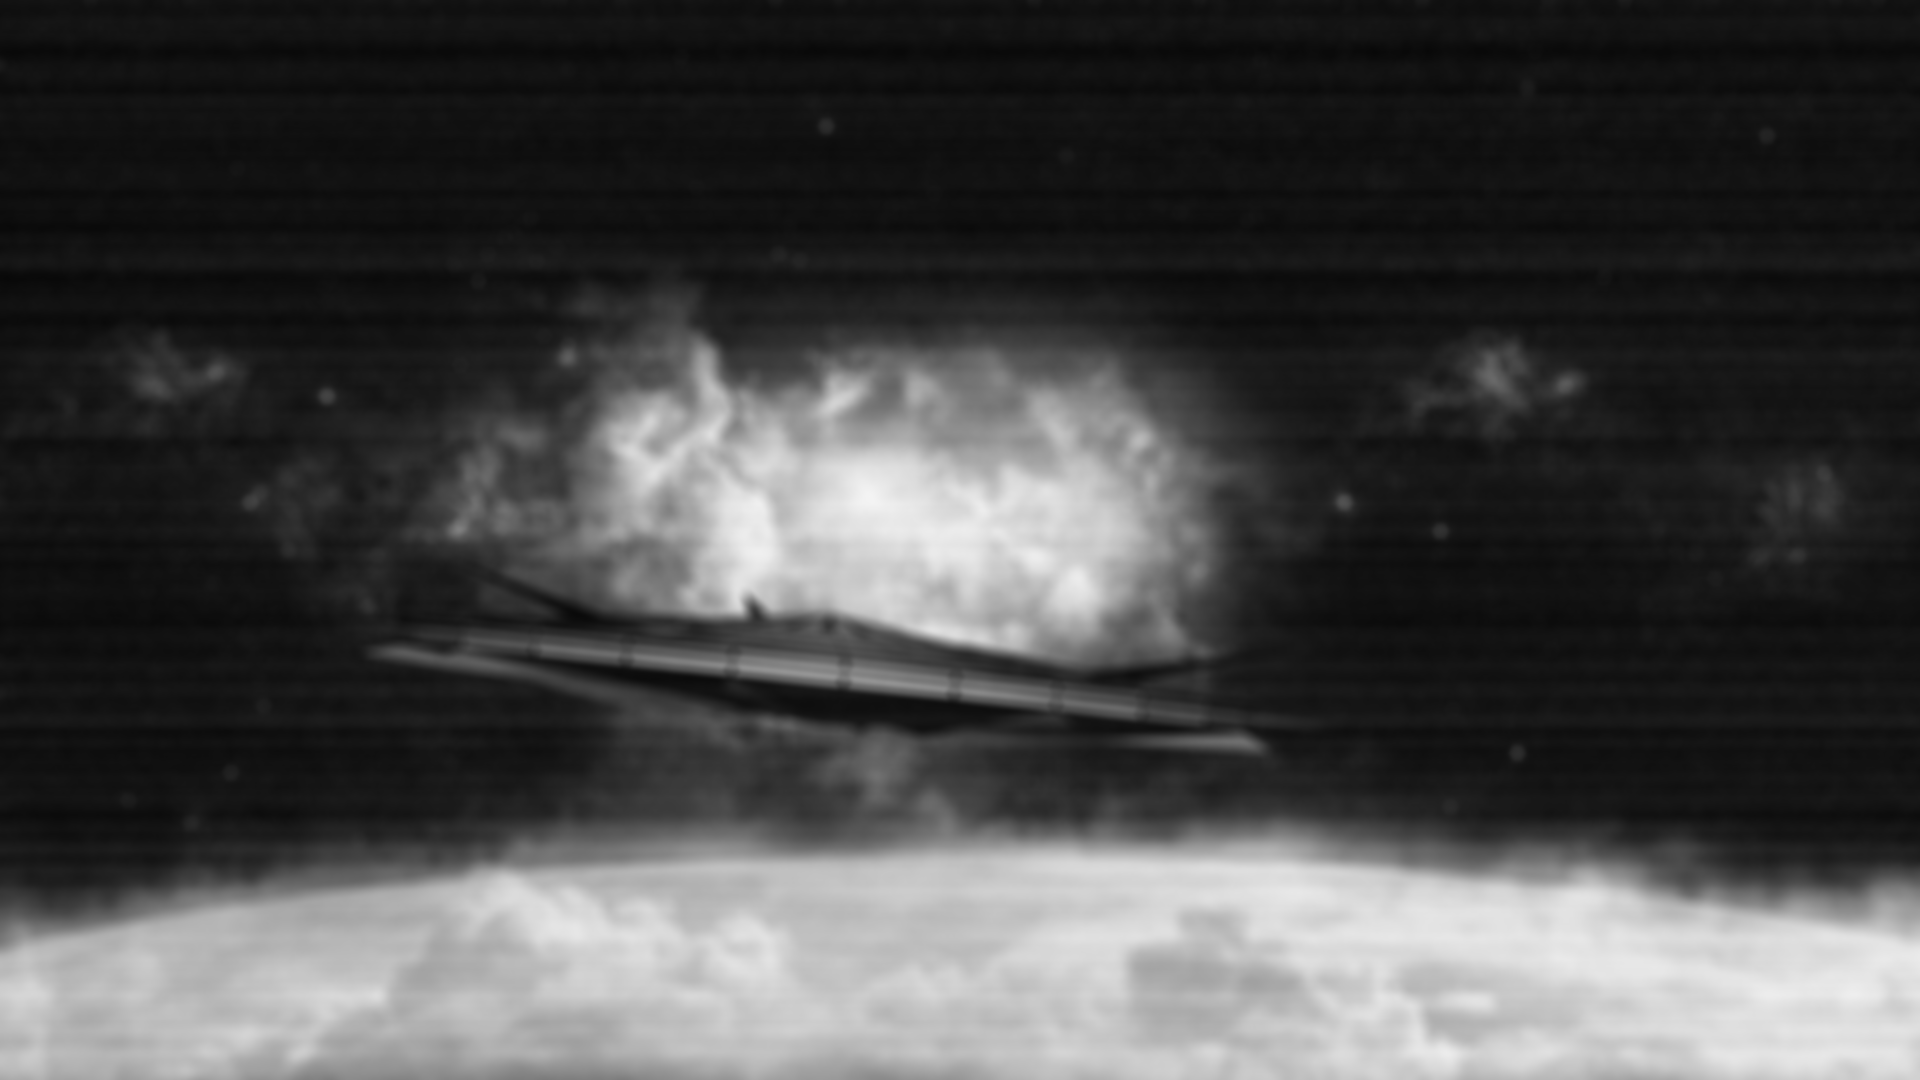 Navy Pilot Claims Tic Tac UFO Jammed Radar, Disabled Weapons System